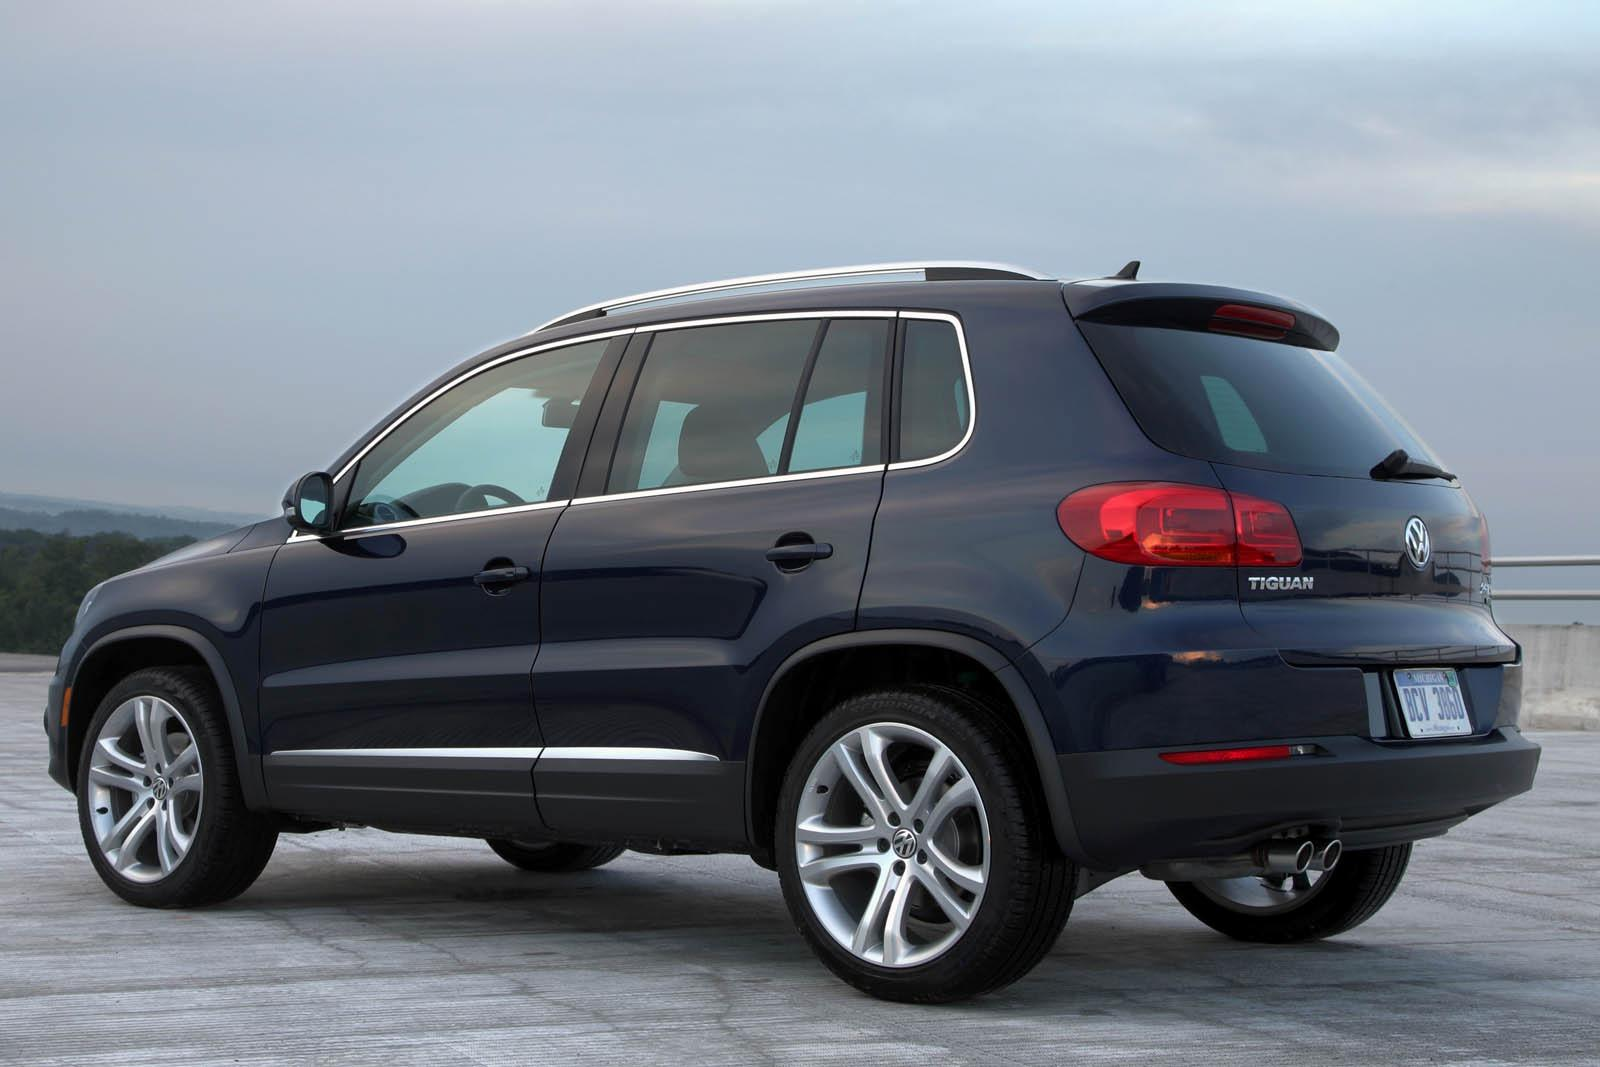 2014 volkswagen tiguan information and photos zombiedrive. Black Bedroom Furniture Sets. Home Design Ideas